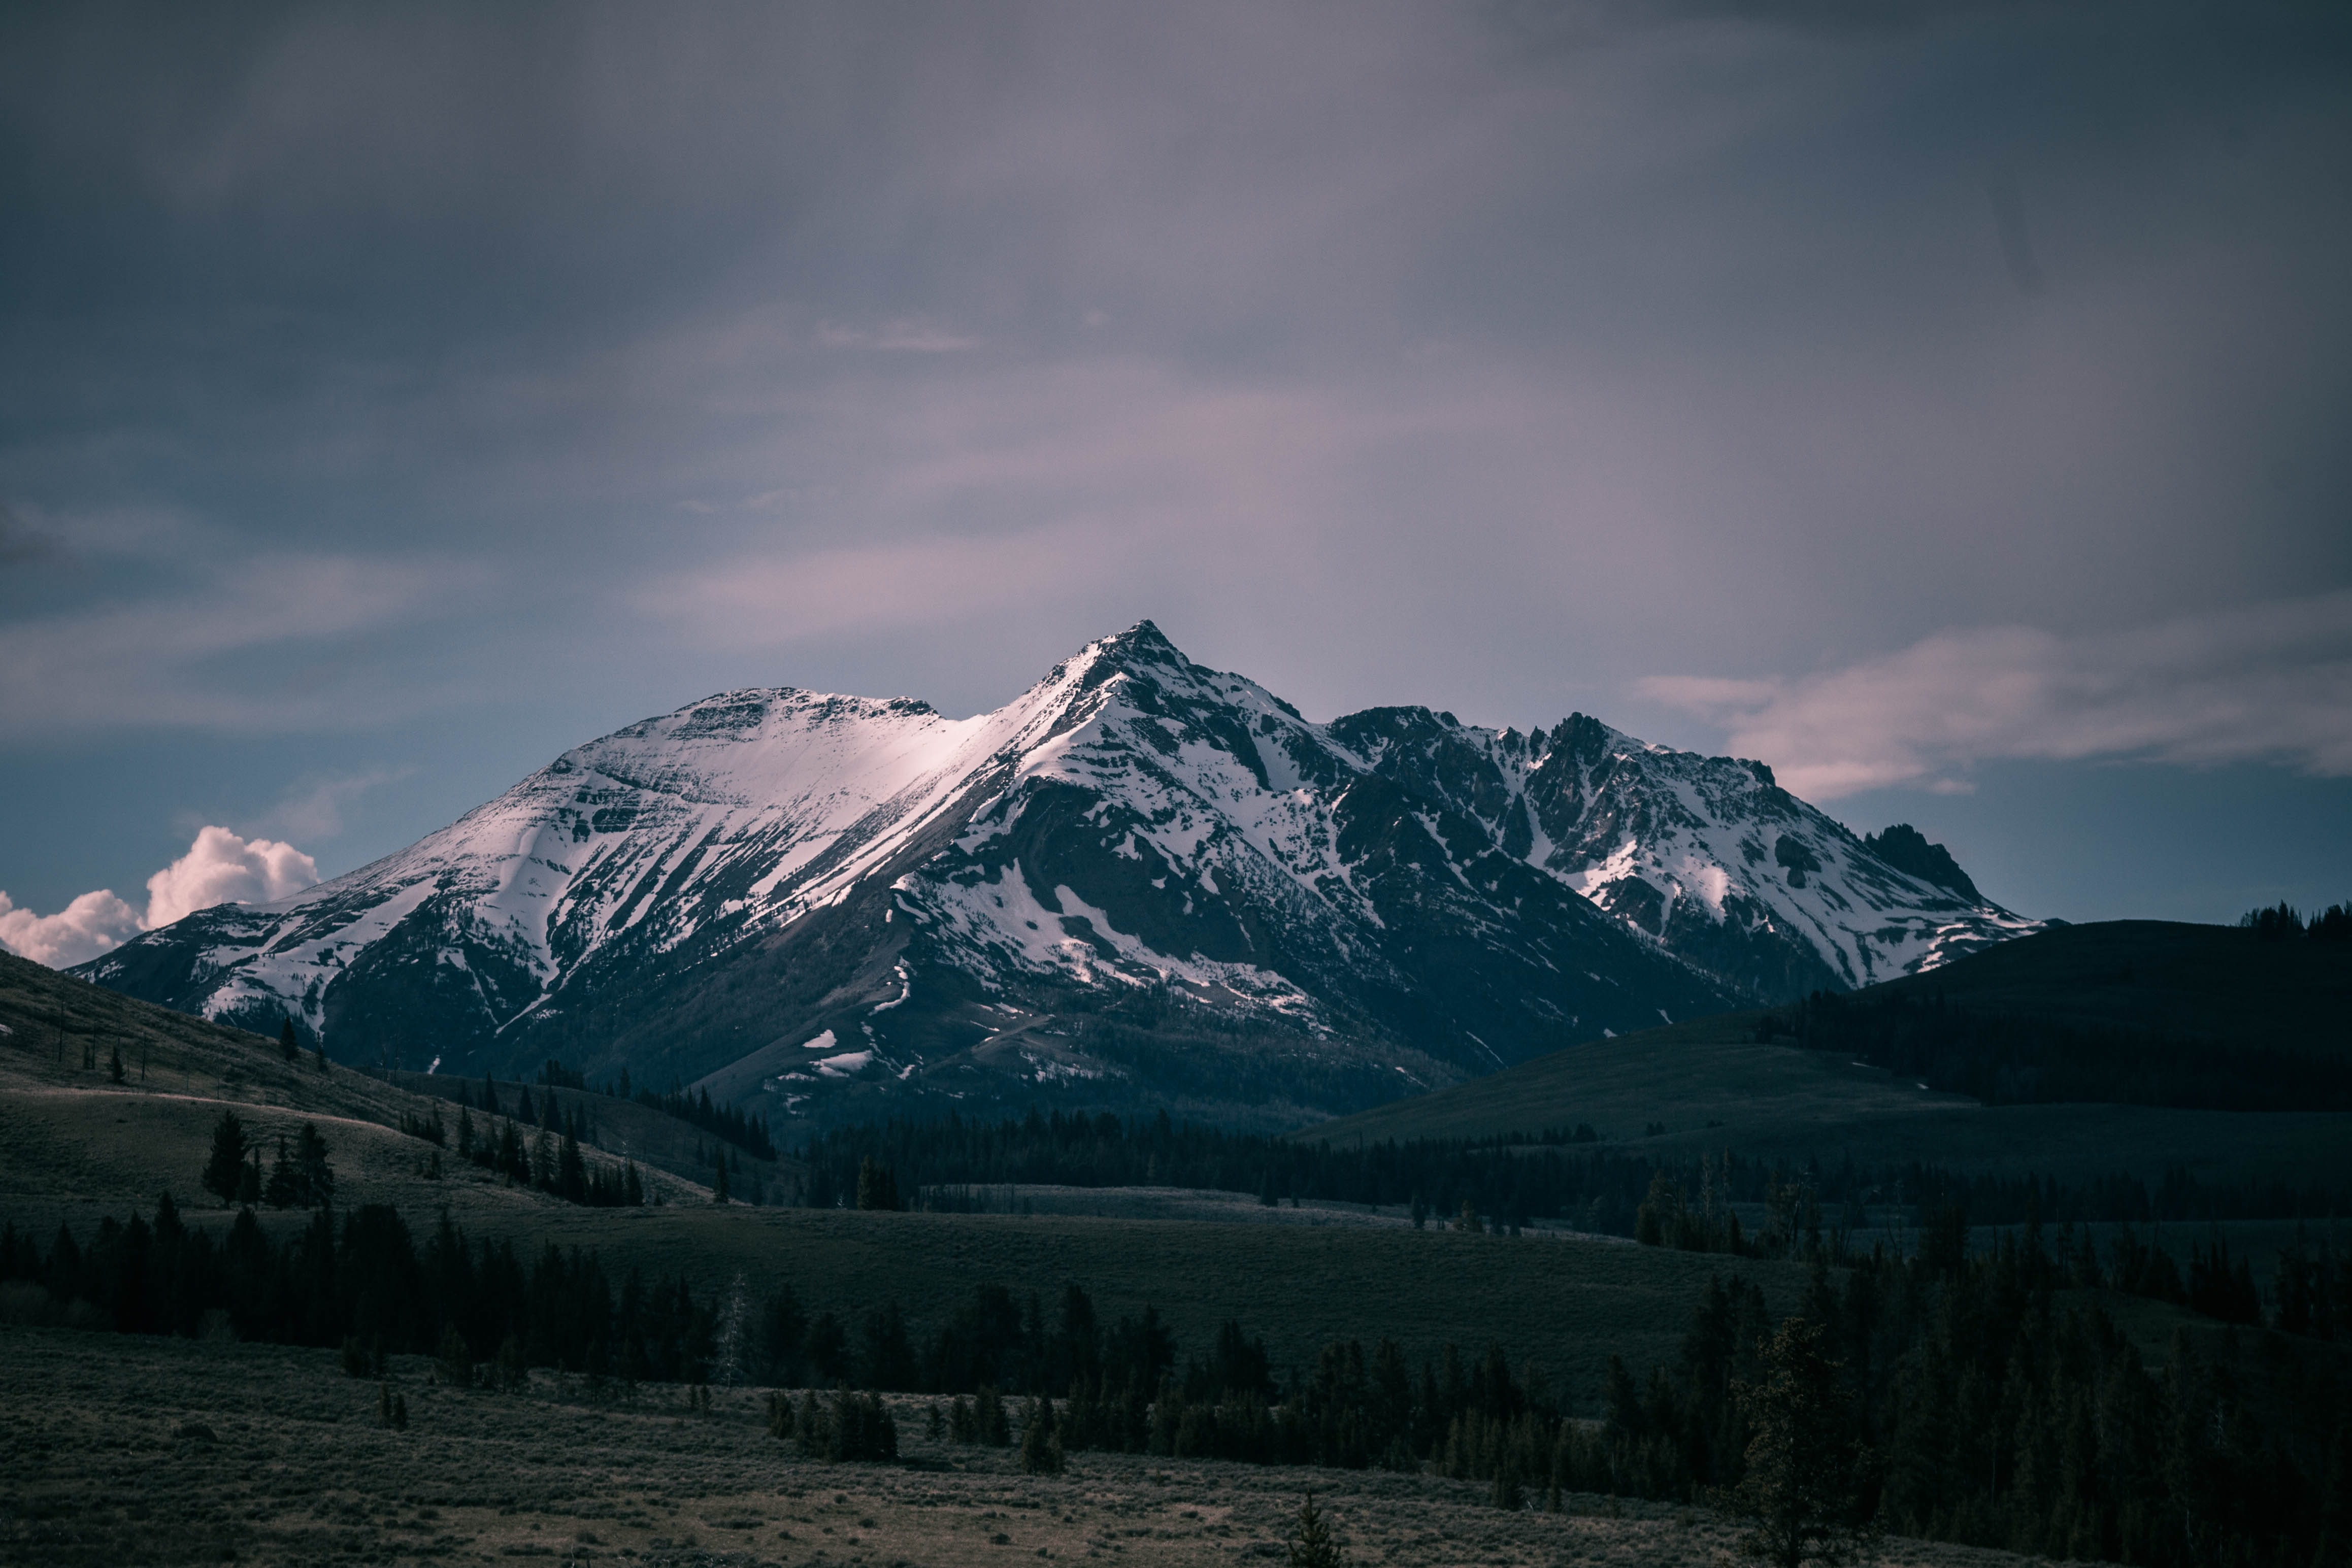 Snow covered mountains in the distance with forests and trees surrounding it in Yellowstone National Park.